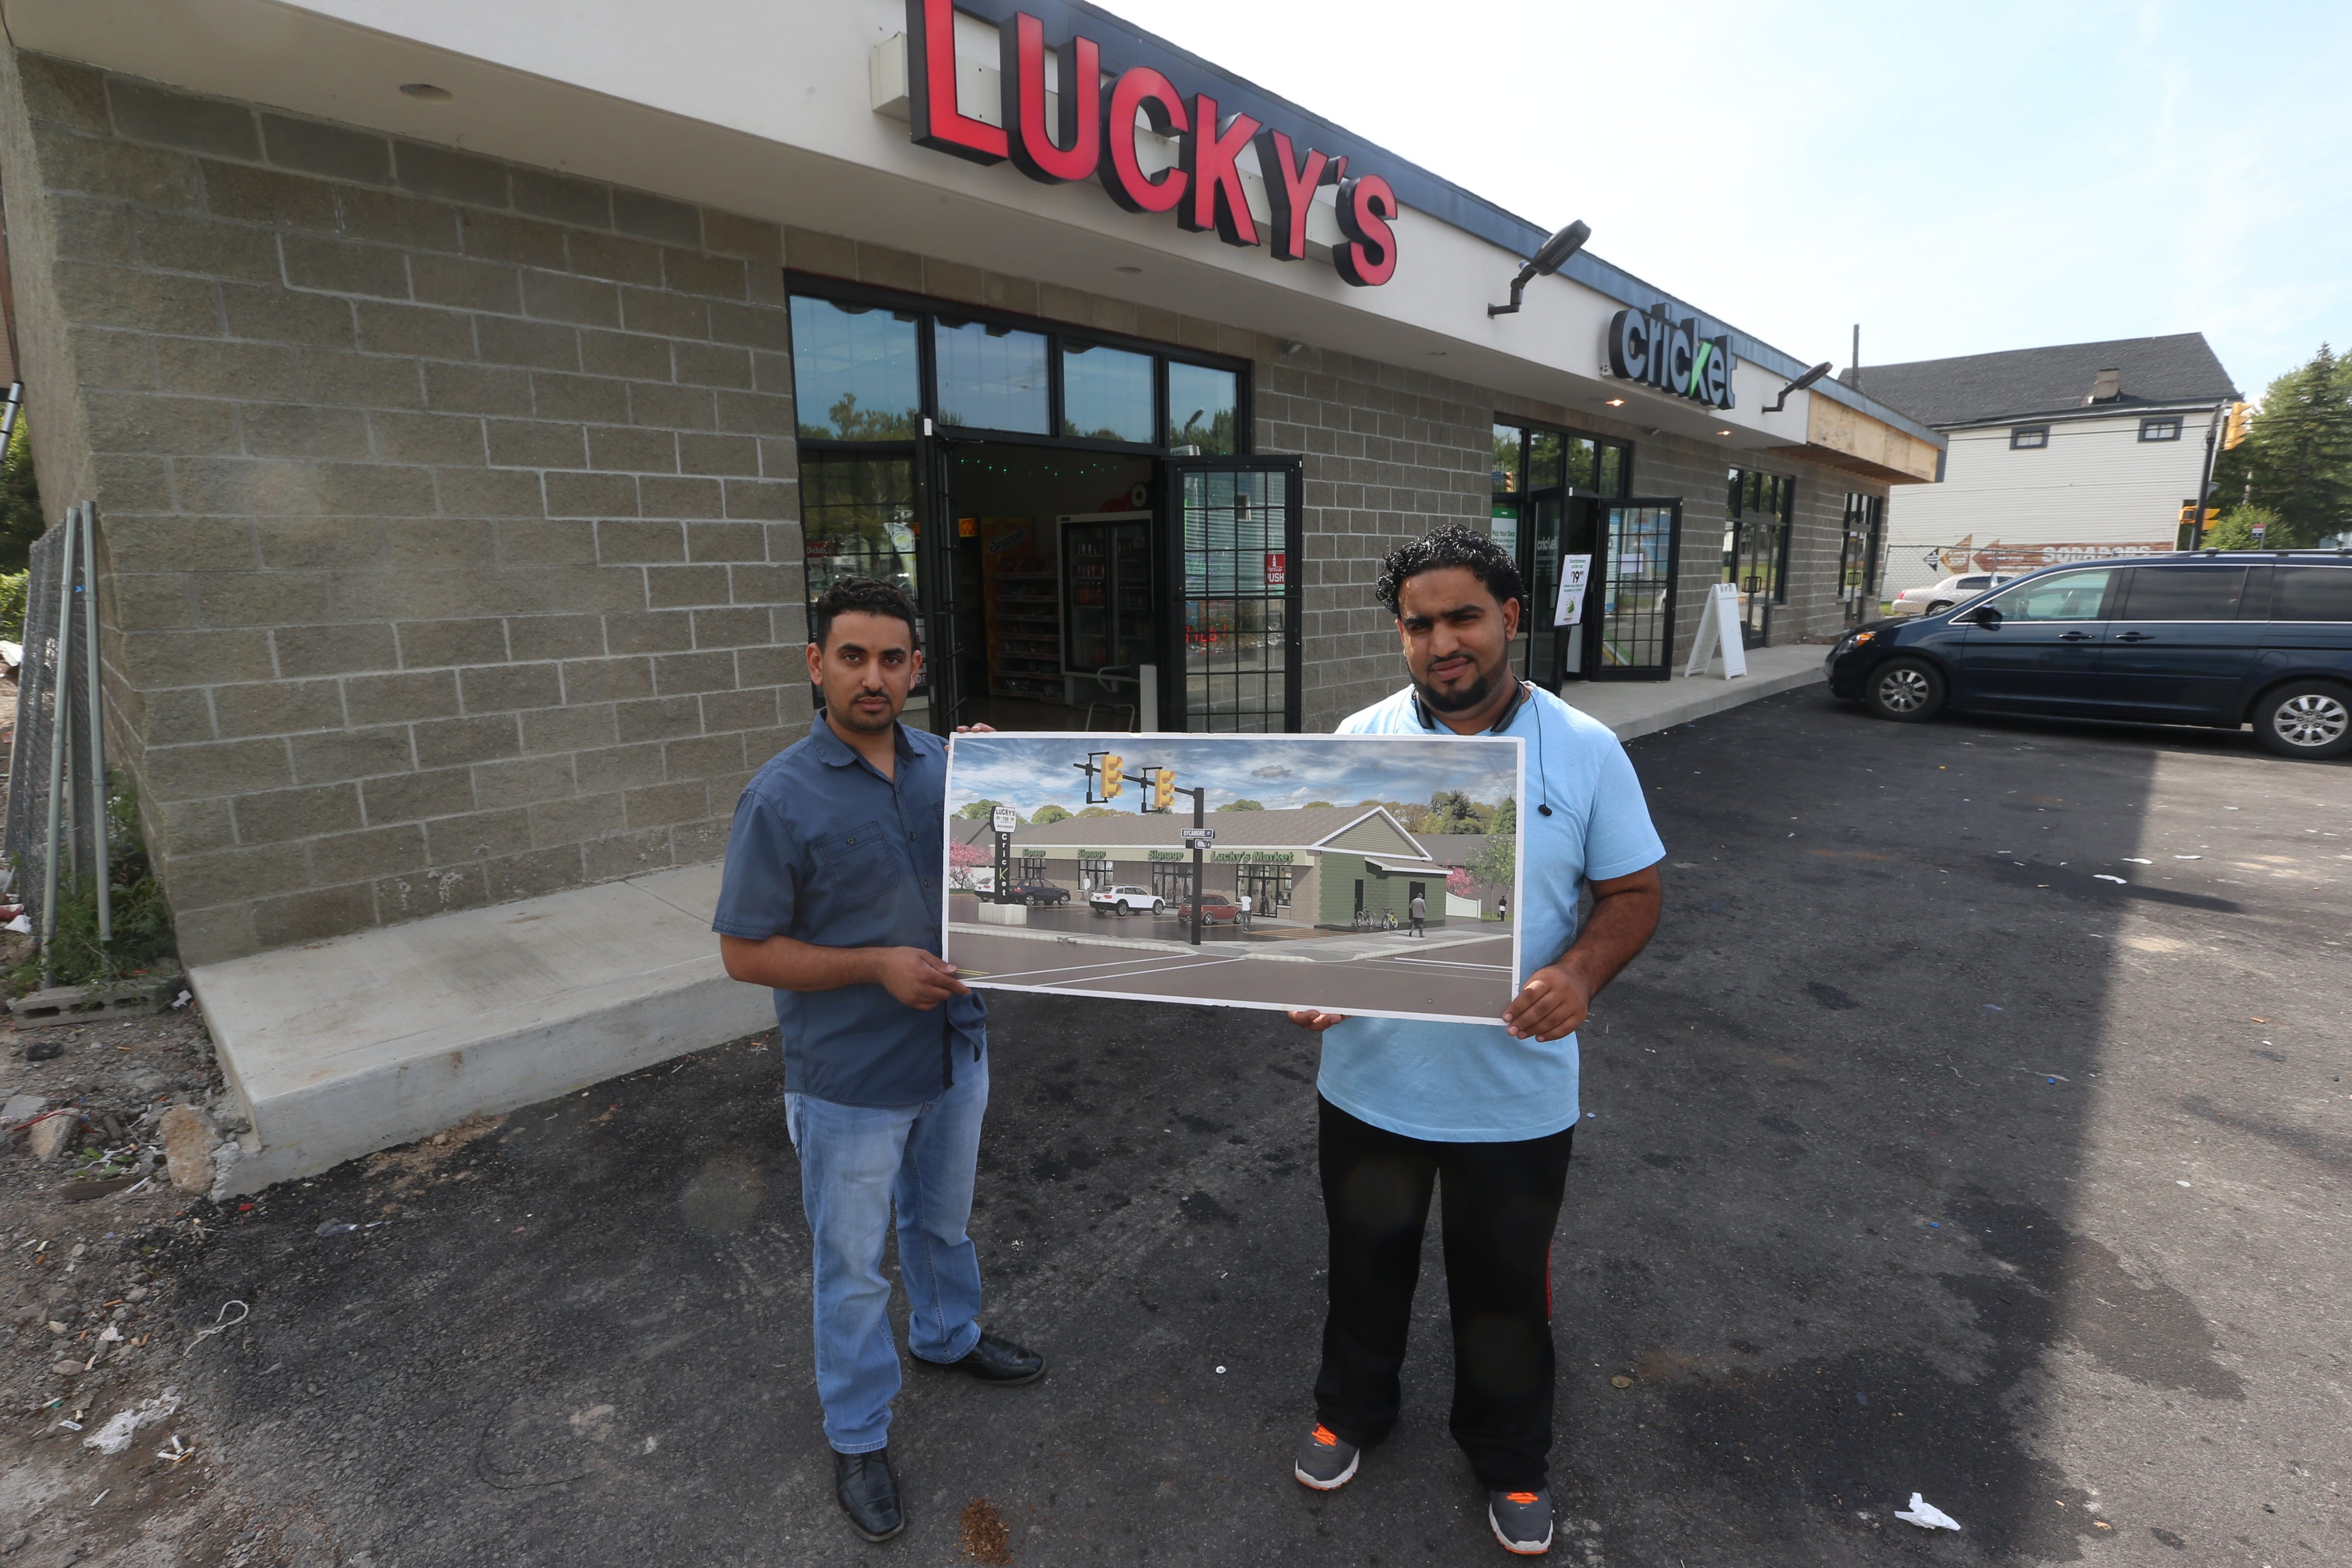 Ali Majid, left, and his cousin Fadel Alhajjaji hold an image of their newly expanded shopping plaza on Sycamore Street.